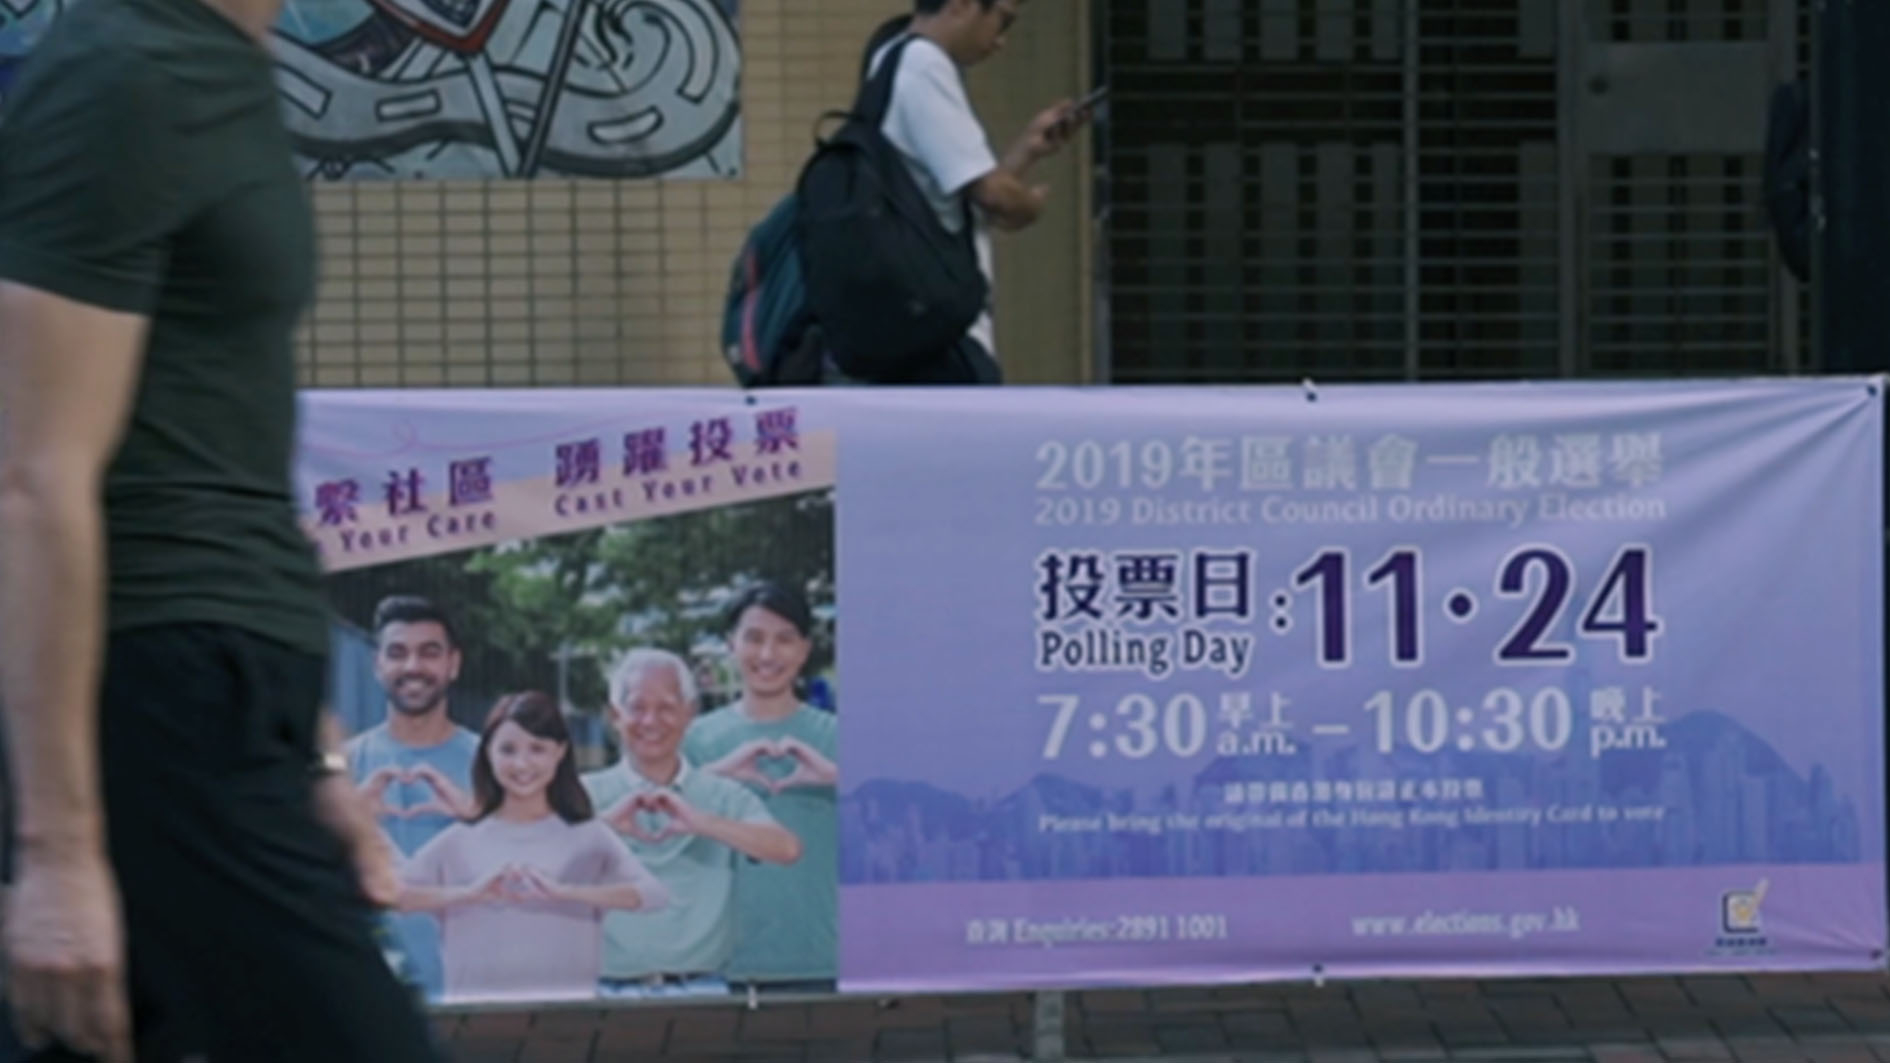 Do not make district council election a stage of violence and political shows: Hong Kong voters